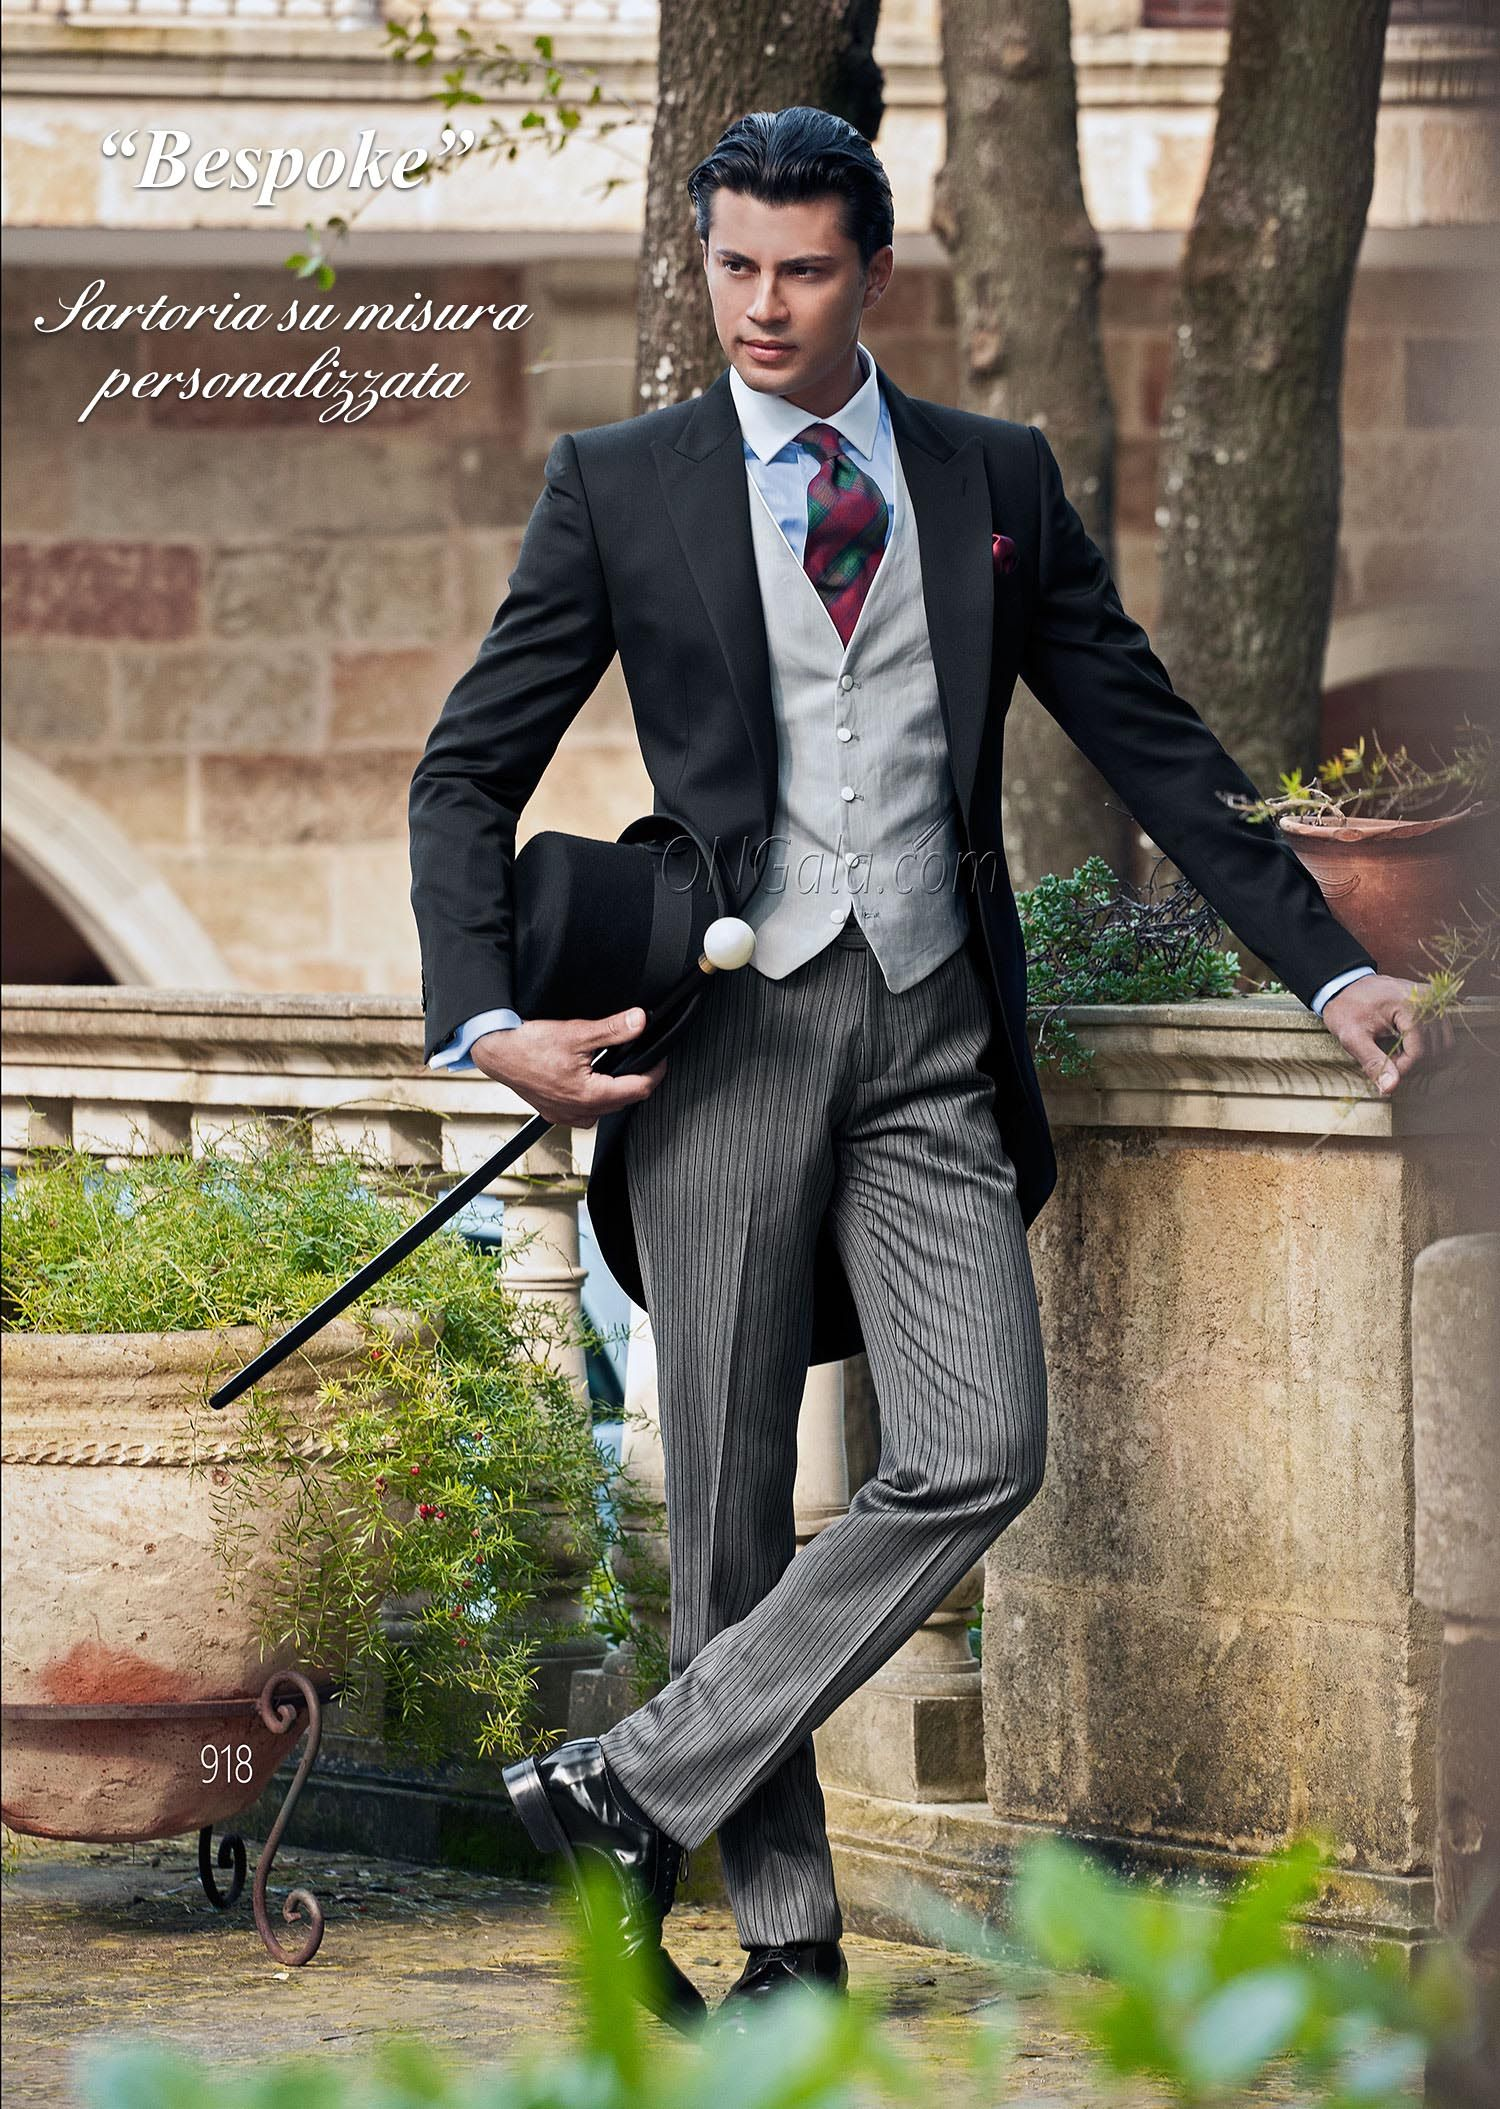 Italian groom style. | Suits socks and shoes | Pinterest | Morning ...